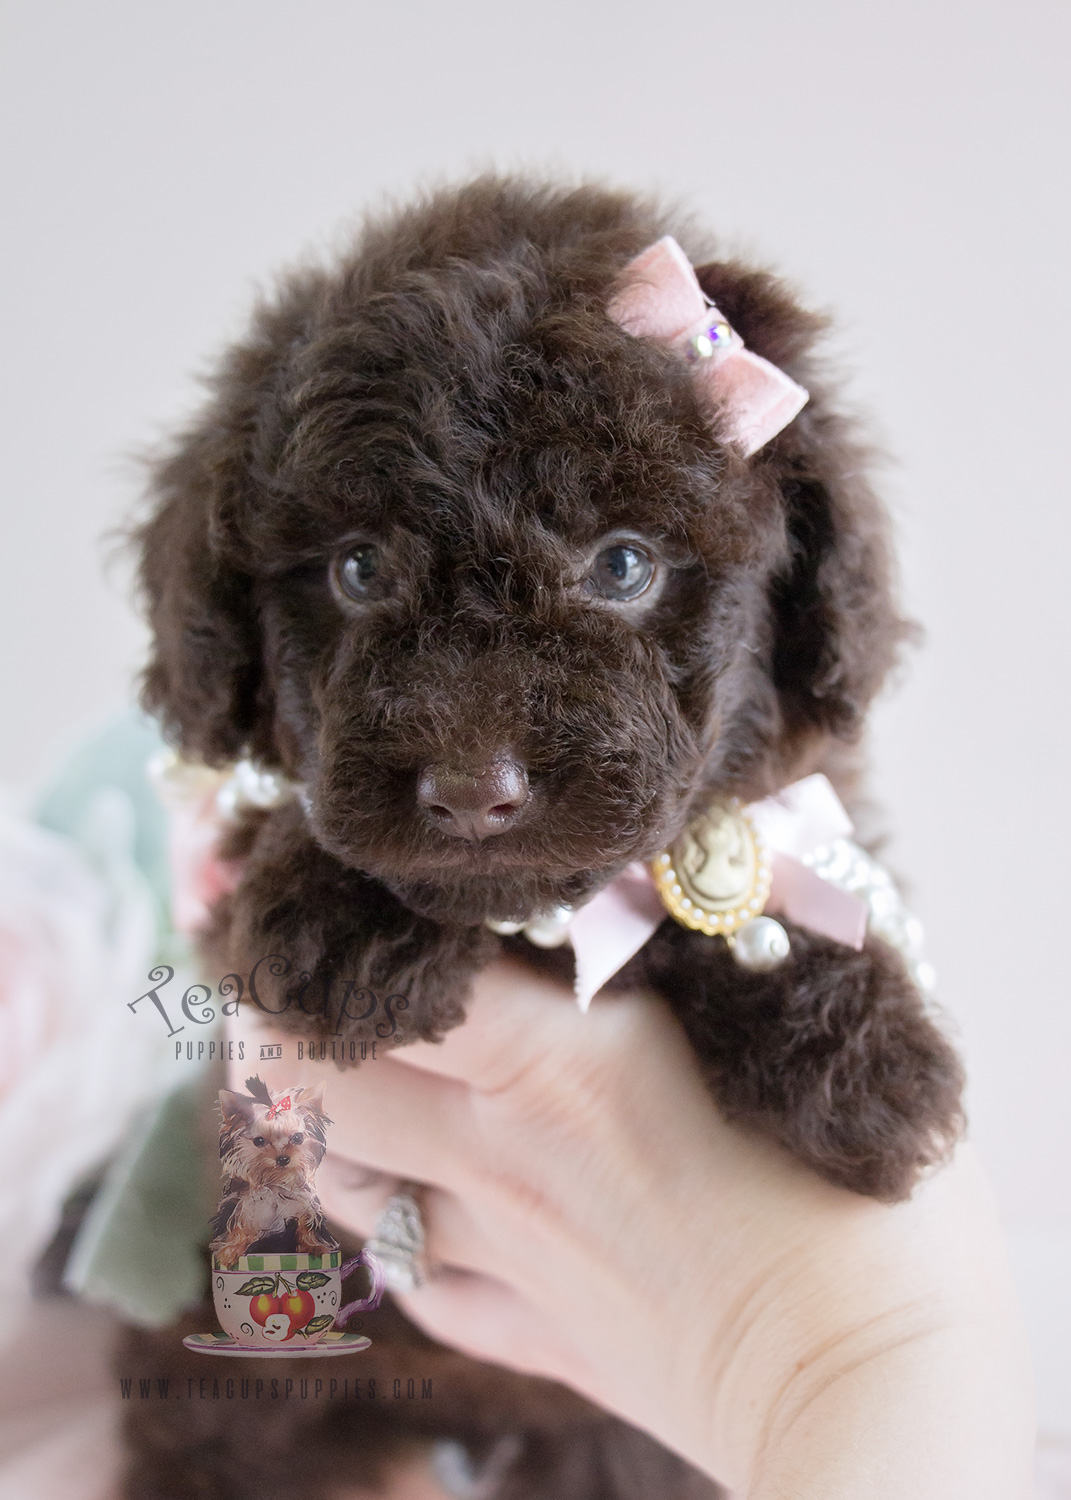 Puppy For Sale #062 Teacup Puppies Chocolate Poodle